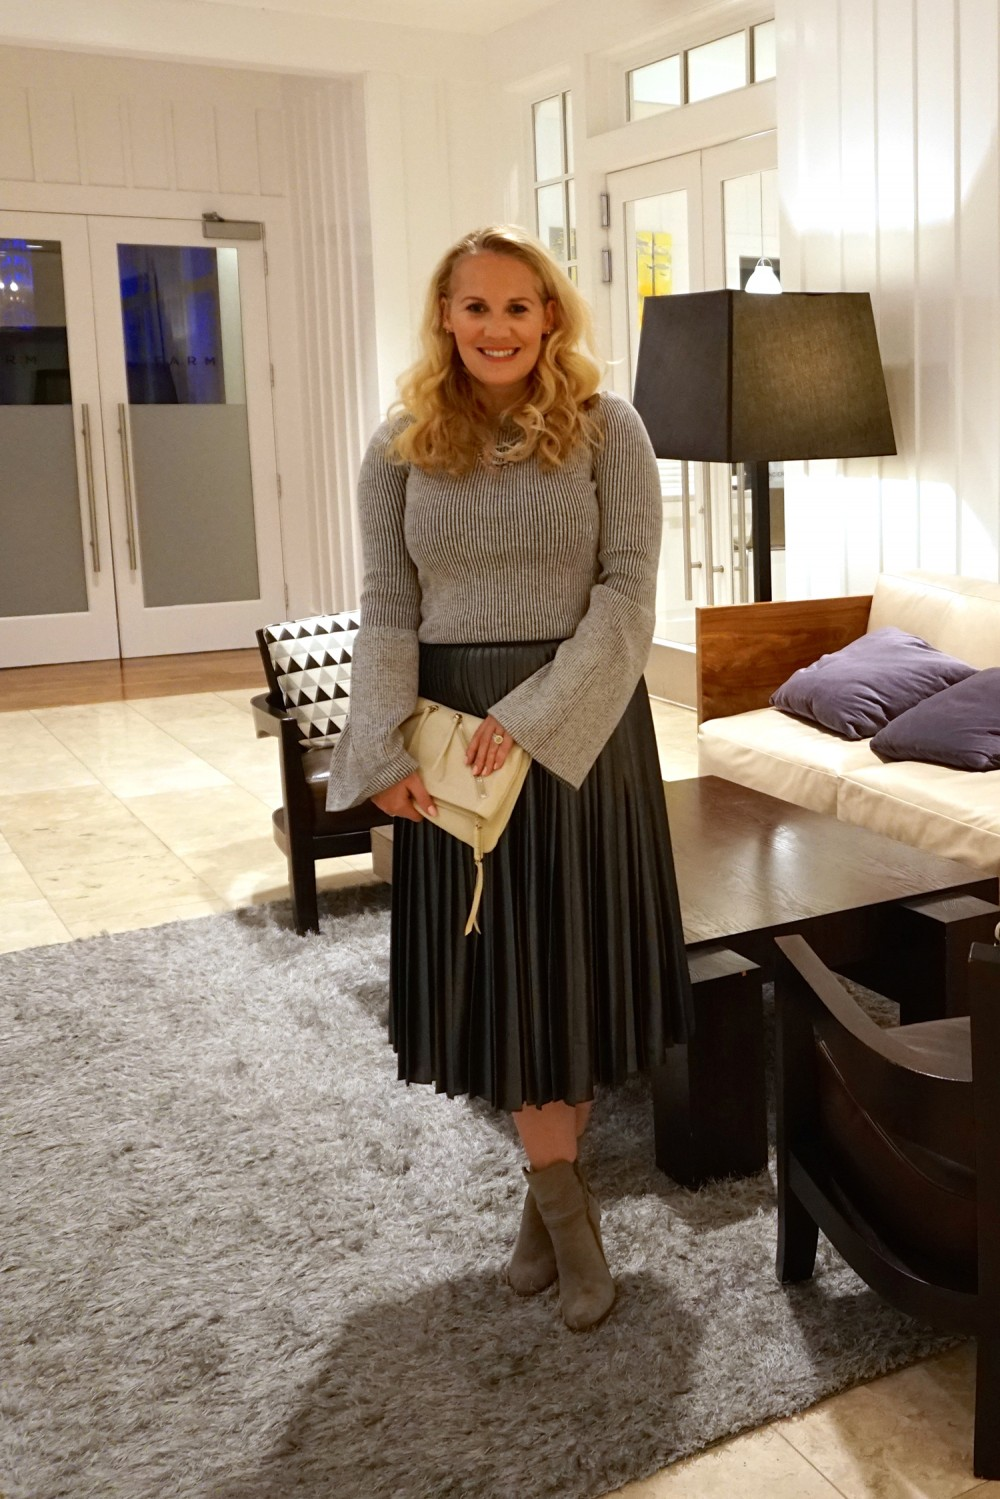 Trumpet Bell Sleeve Sweater-Ted Baker-Who What Wear for Target-Outfit Inspiration-Metallic Pleated Skirt-Steve Madden Suede Boots-Have Need Want 3